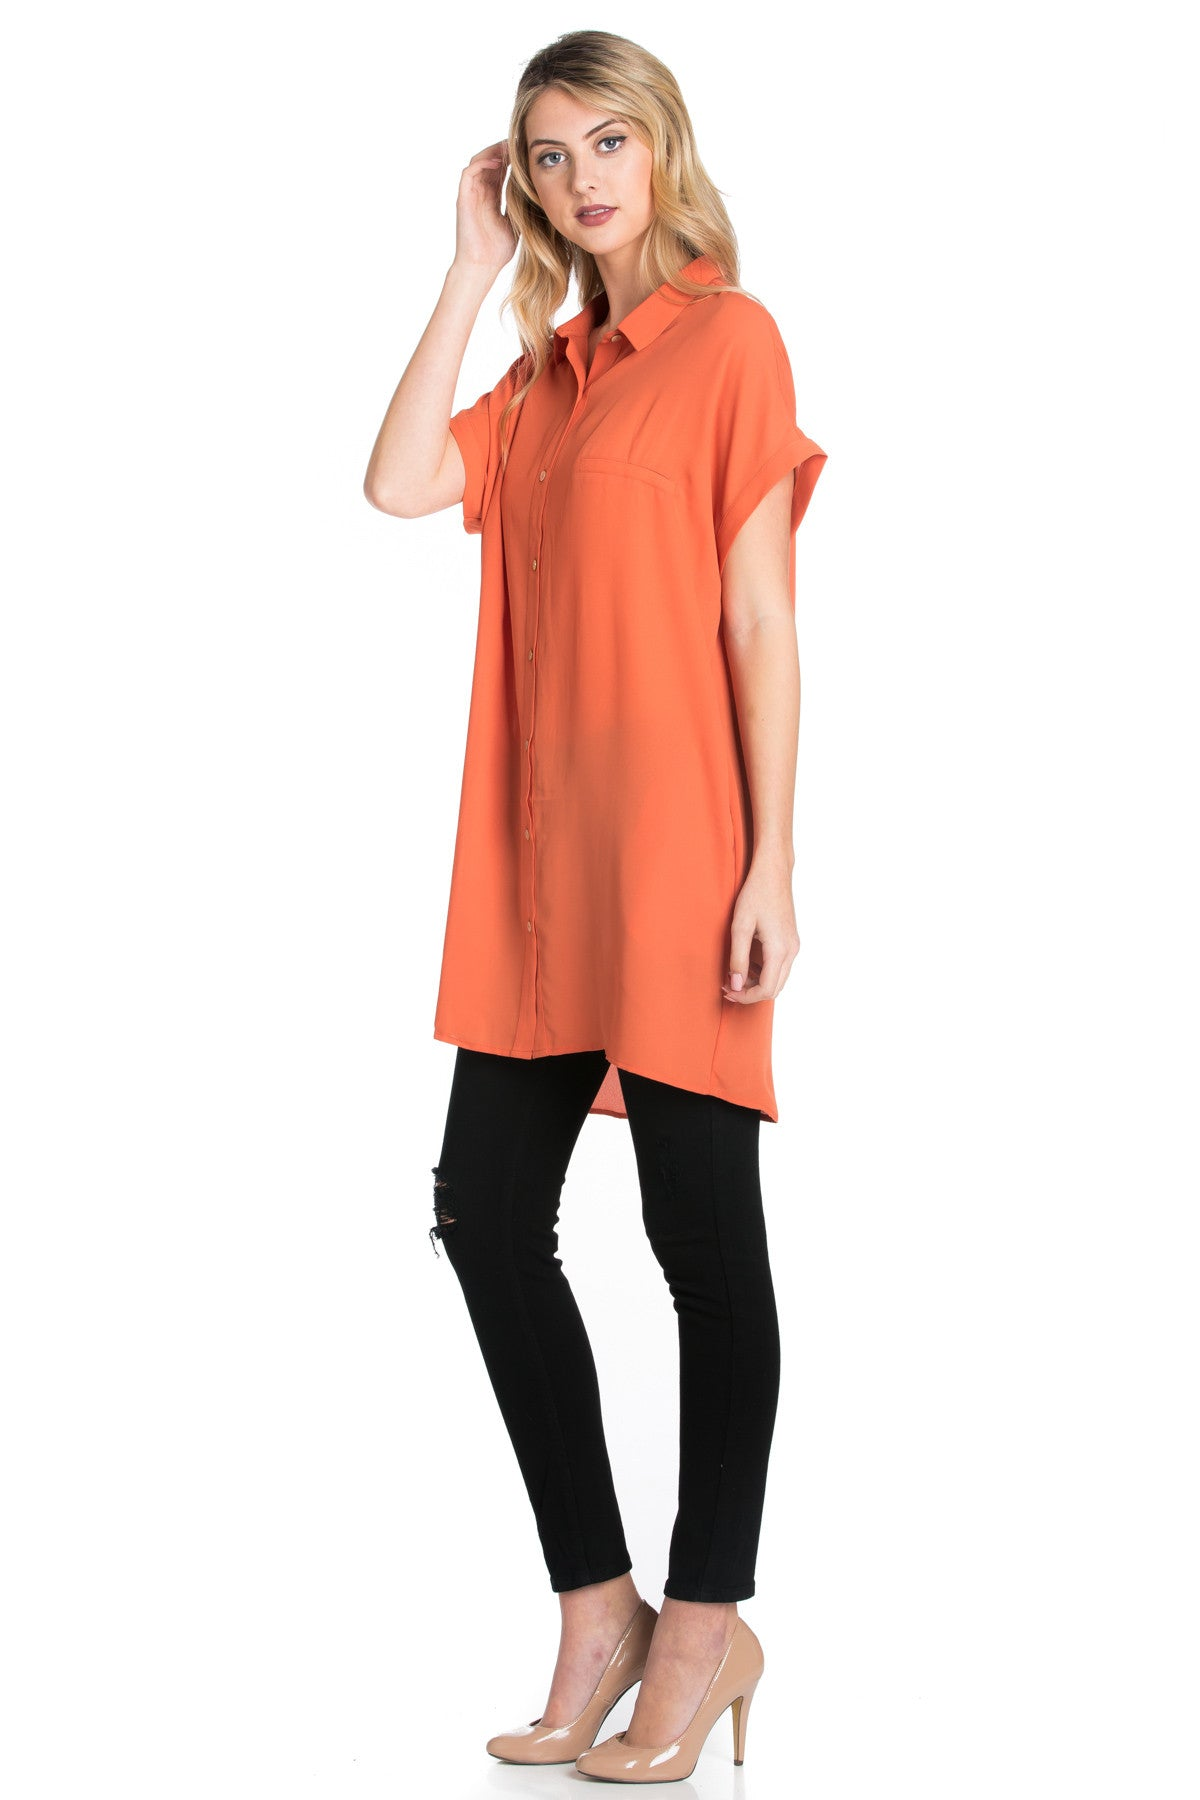 Short Sleeve Longline Button Down Chiffon Top in Sun Coral - Tops - My Yuccie - 2